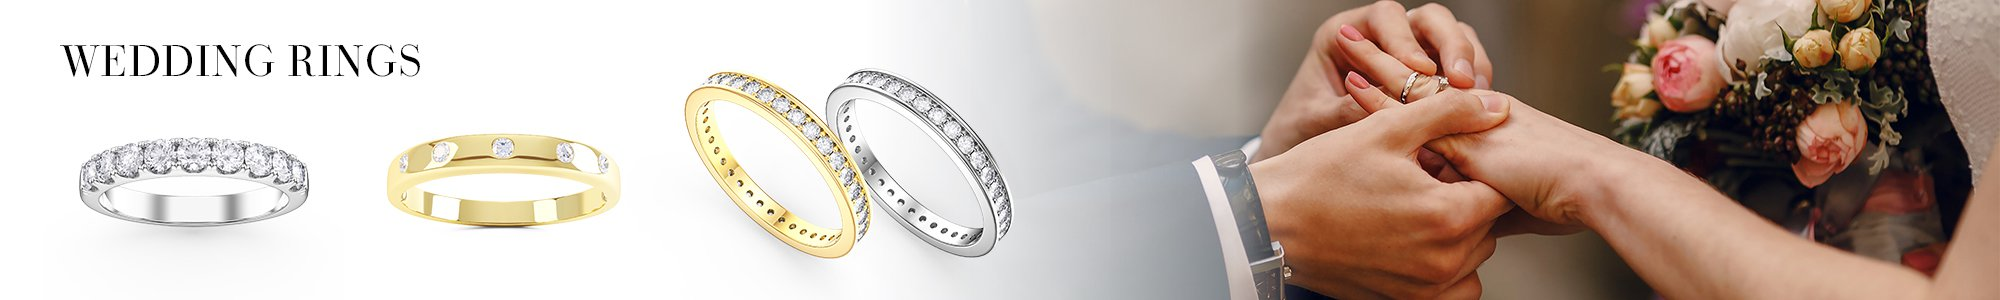 Wedding Rings - From White Sapphire set in Silver to Diamonds set in 18K Gold or Platinum.